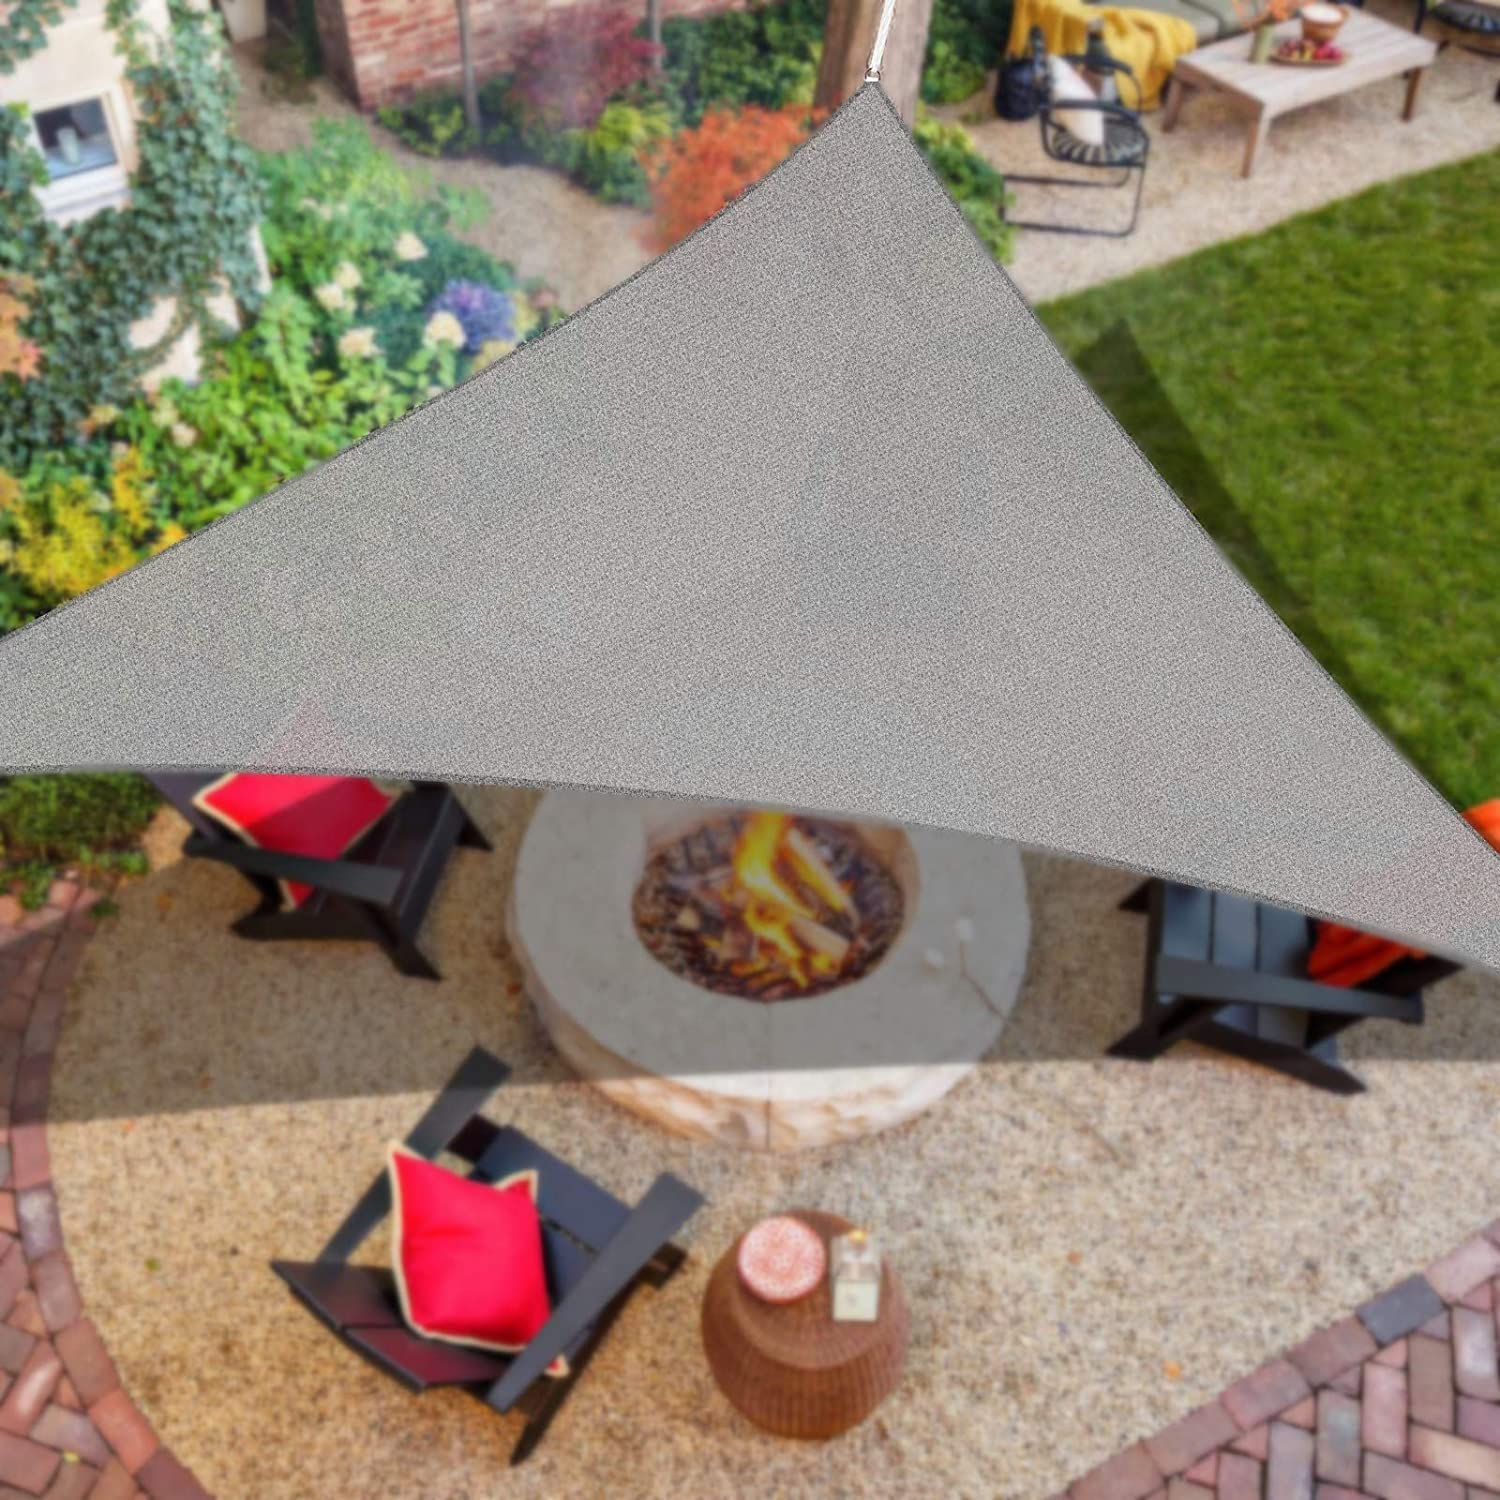 iCOVER Sun Shade Sail 12' x 12' x 12' Triangle Canopy, 185GSM Fabric Permeable Pergolas Top Cover, for Outdoor Patio Lawn Garden Backyard Awning, Grey